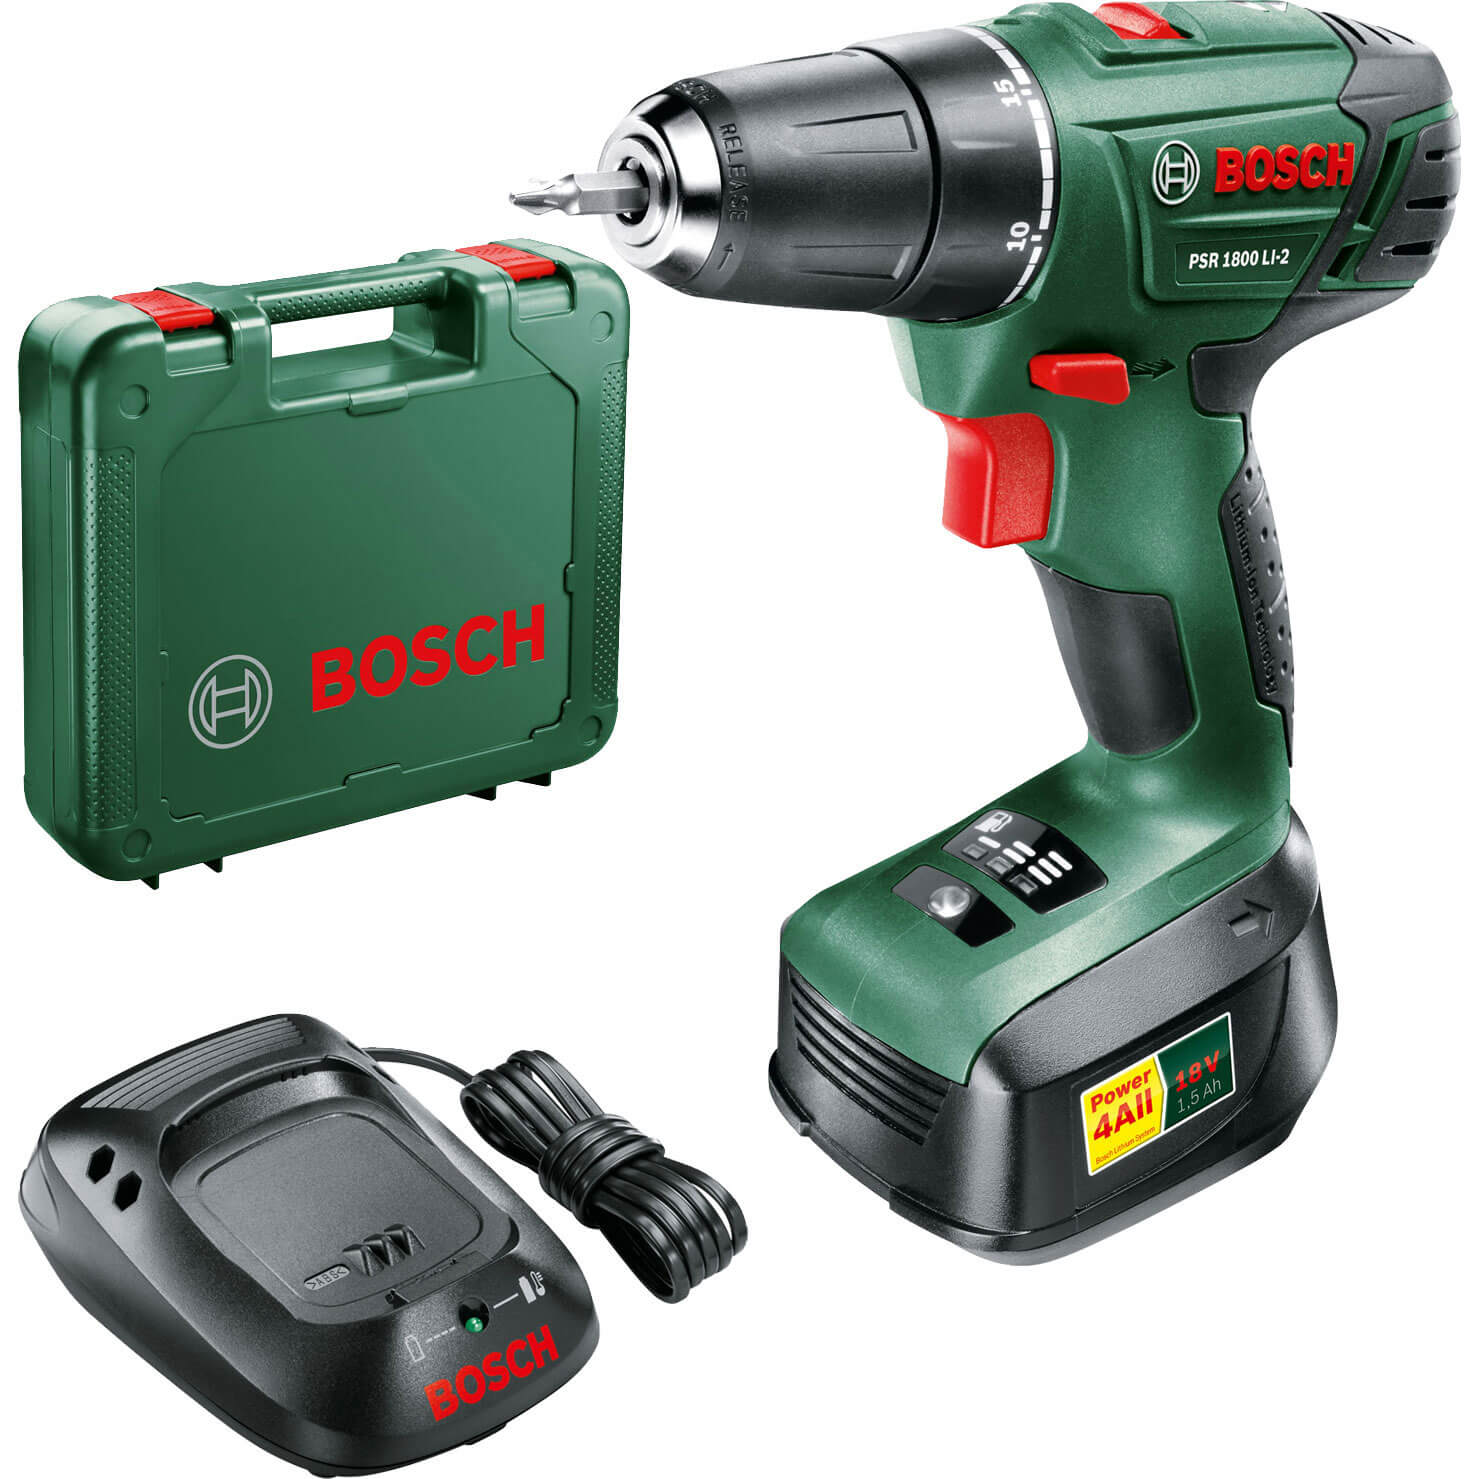 drill drivers bosch power4all psr 1800 li 2 18v cordless. Black Bedroom Furniture Sets. Home Design Ideas